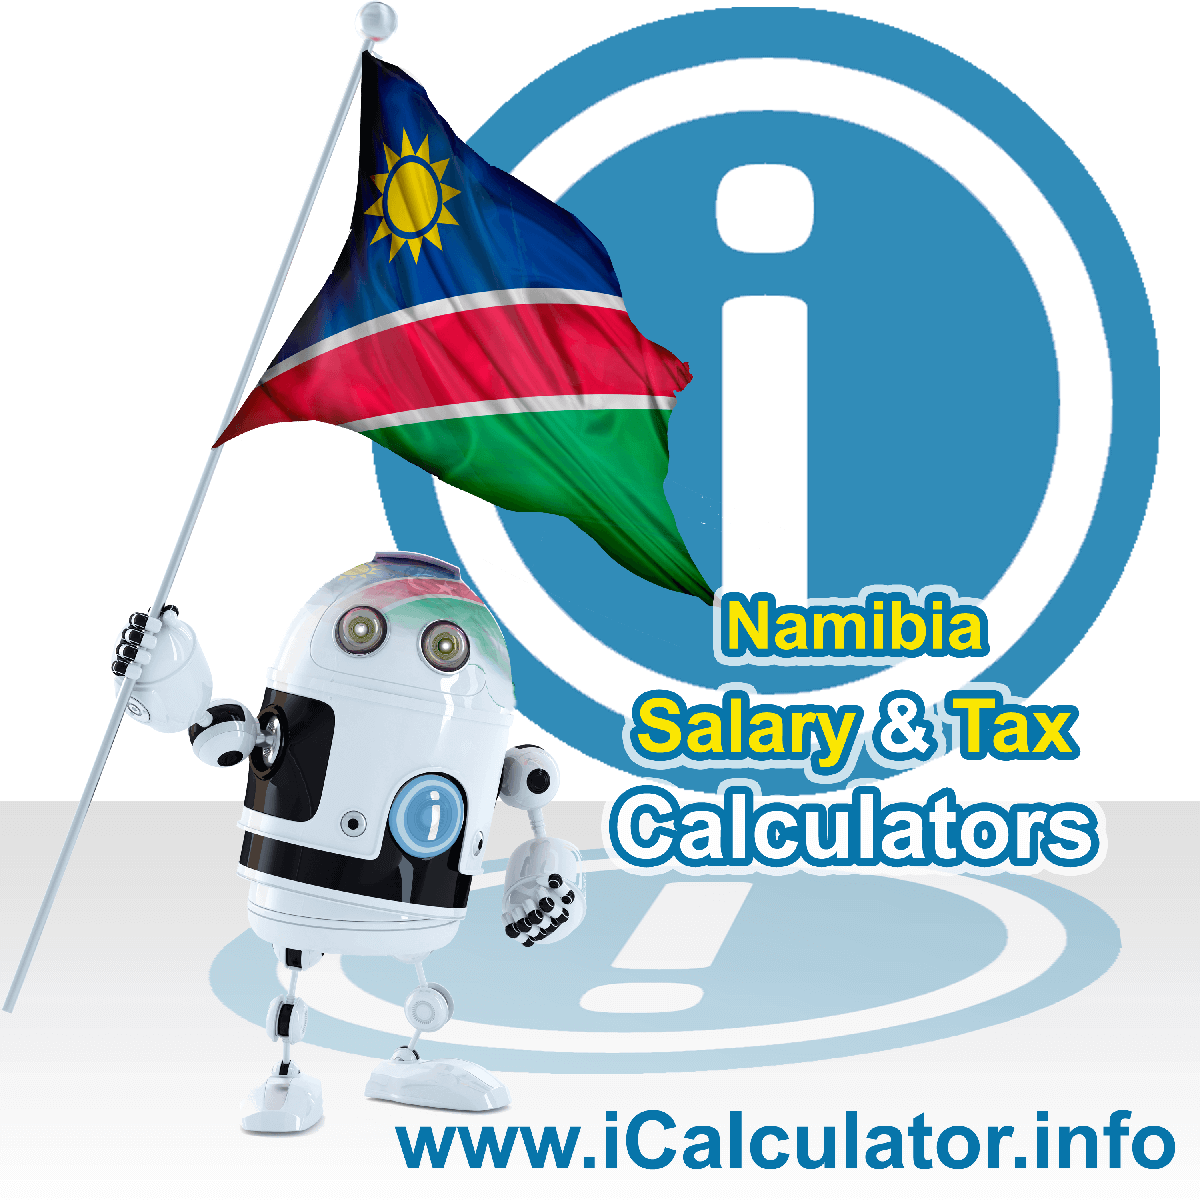 Namibia Wage Calculator. This image shows the Namibia flag and information relating to the tax formula for the Namibia Tax Calculator